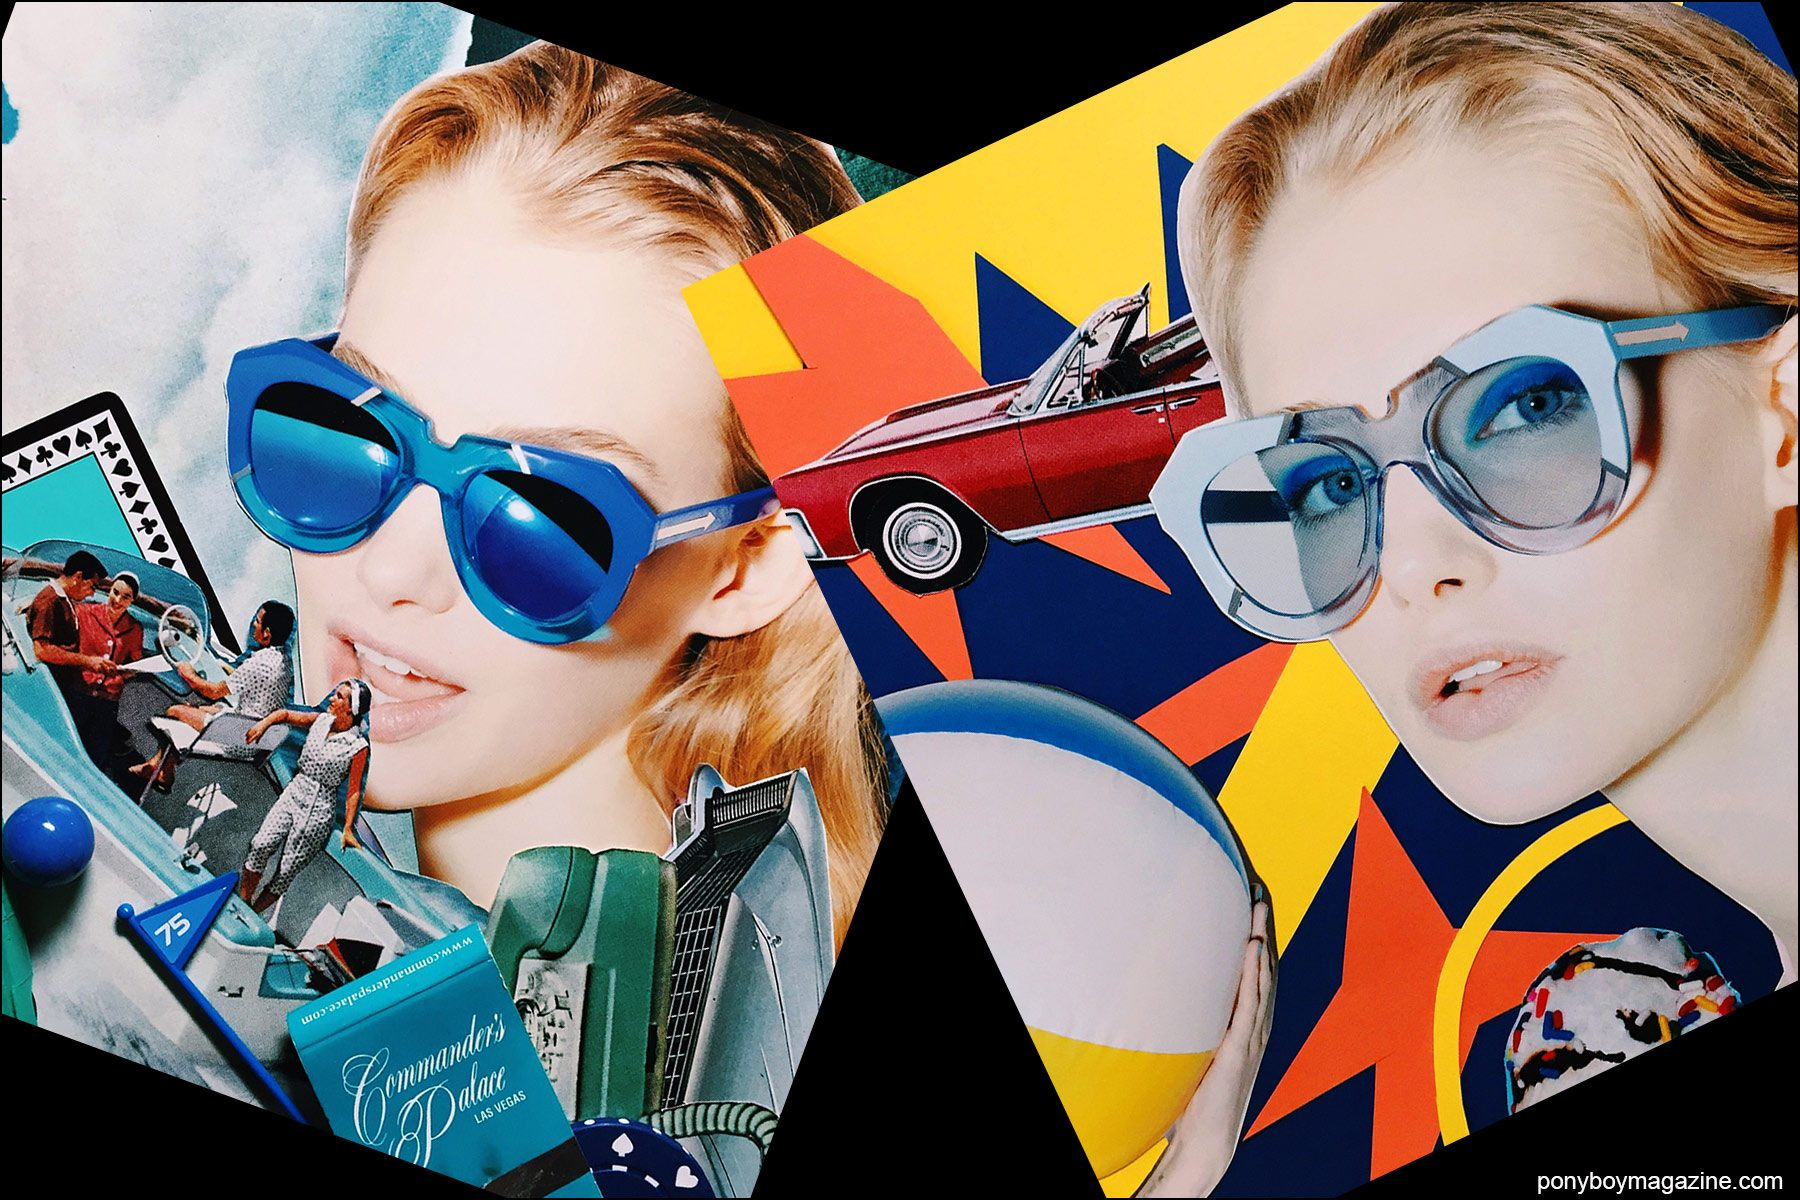 Collage artwork of Karen Walker images by Patrick Keohane for RS Theory. Ponyboy magazine NY.